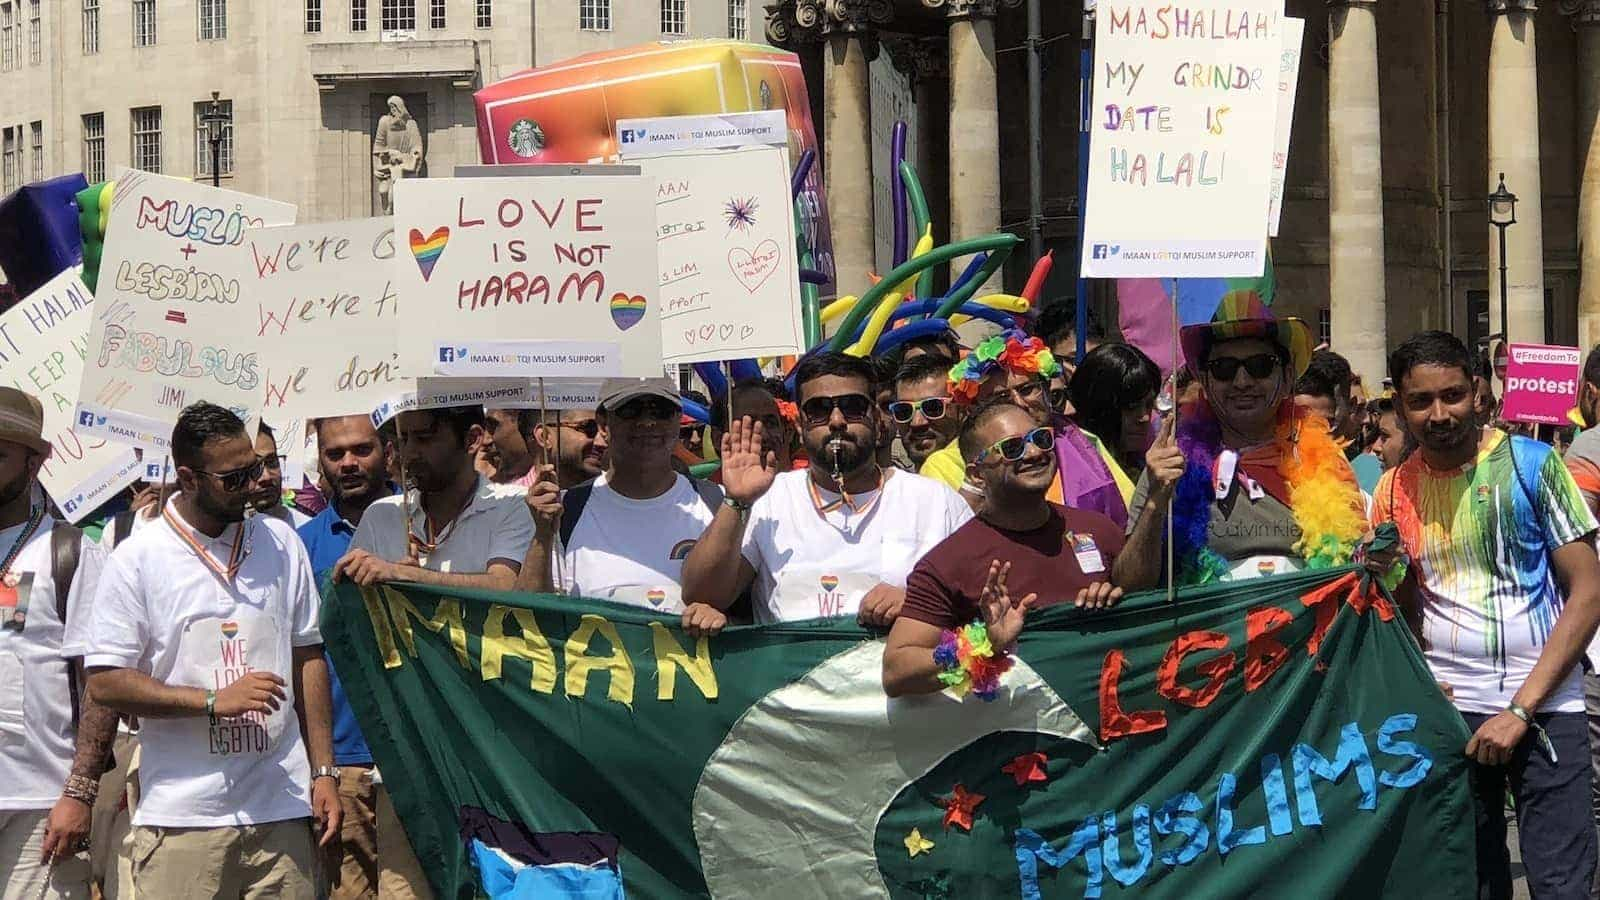 Gay Muslims demonstrating at a Pride event